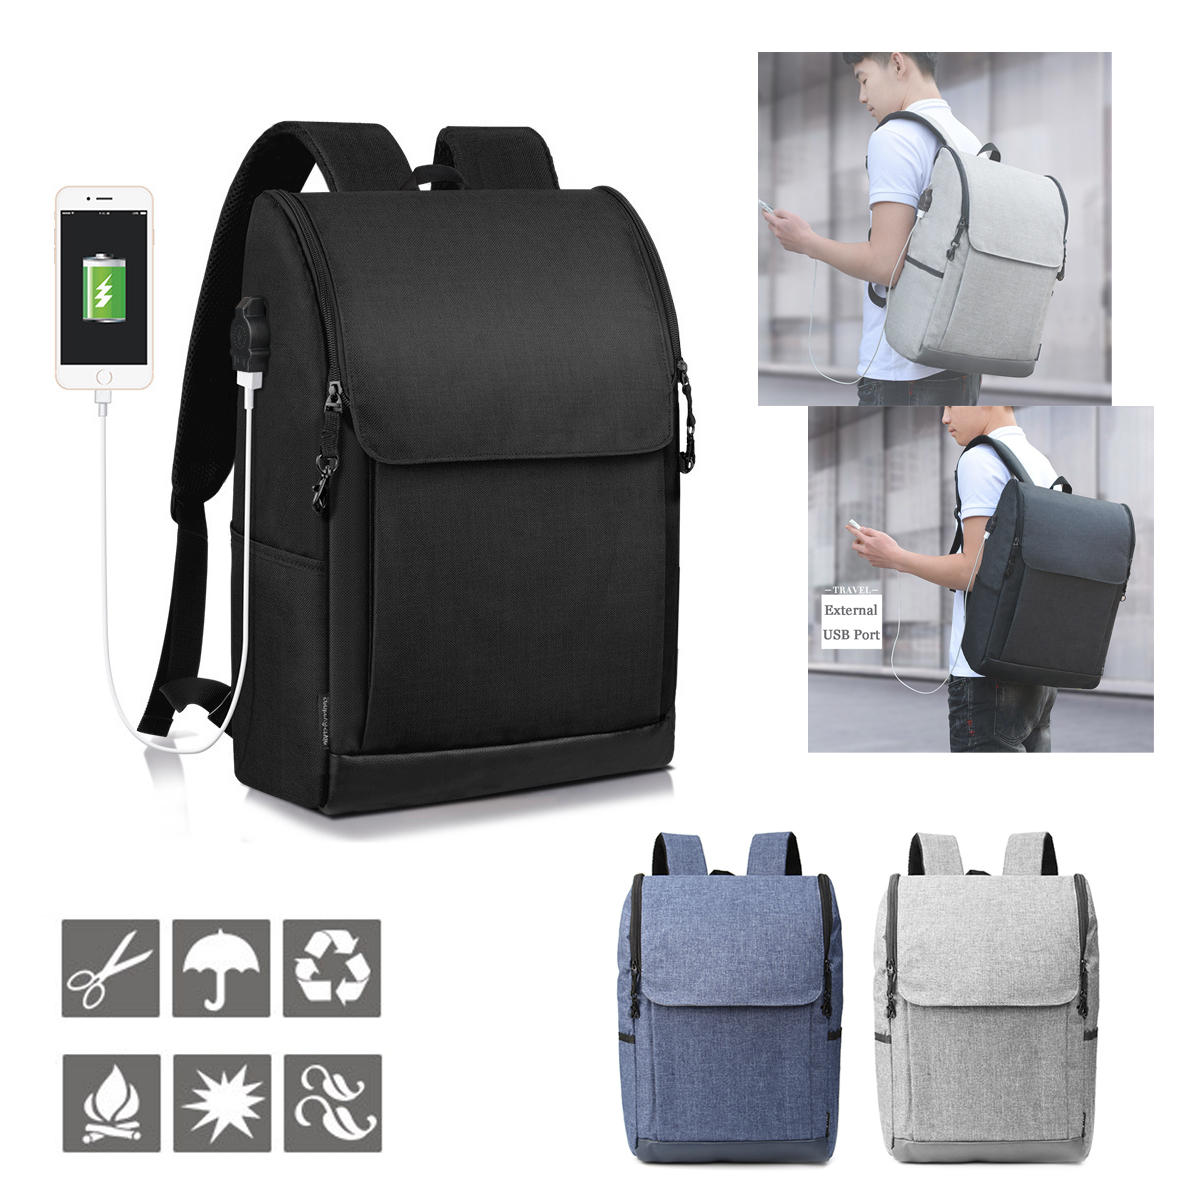 Travel Rucksack Anti Theft Backpack With Usb Charge Port Waterproof Laptop Travel Rucksack School Bag